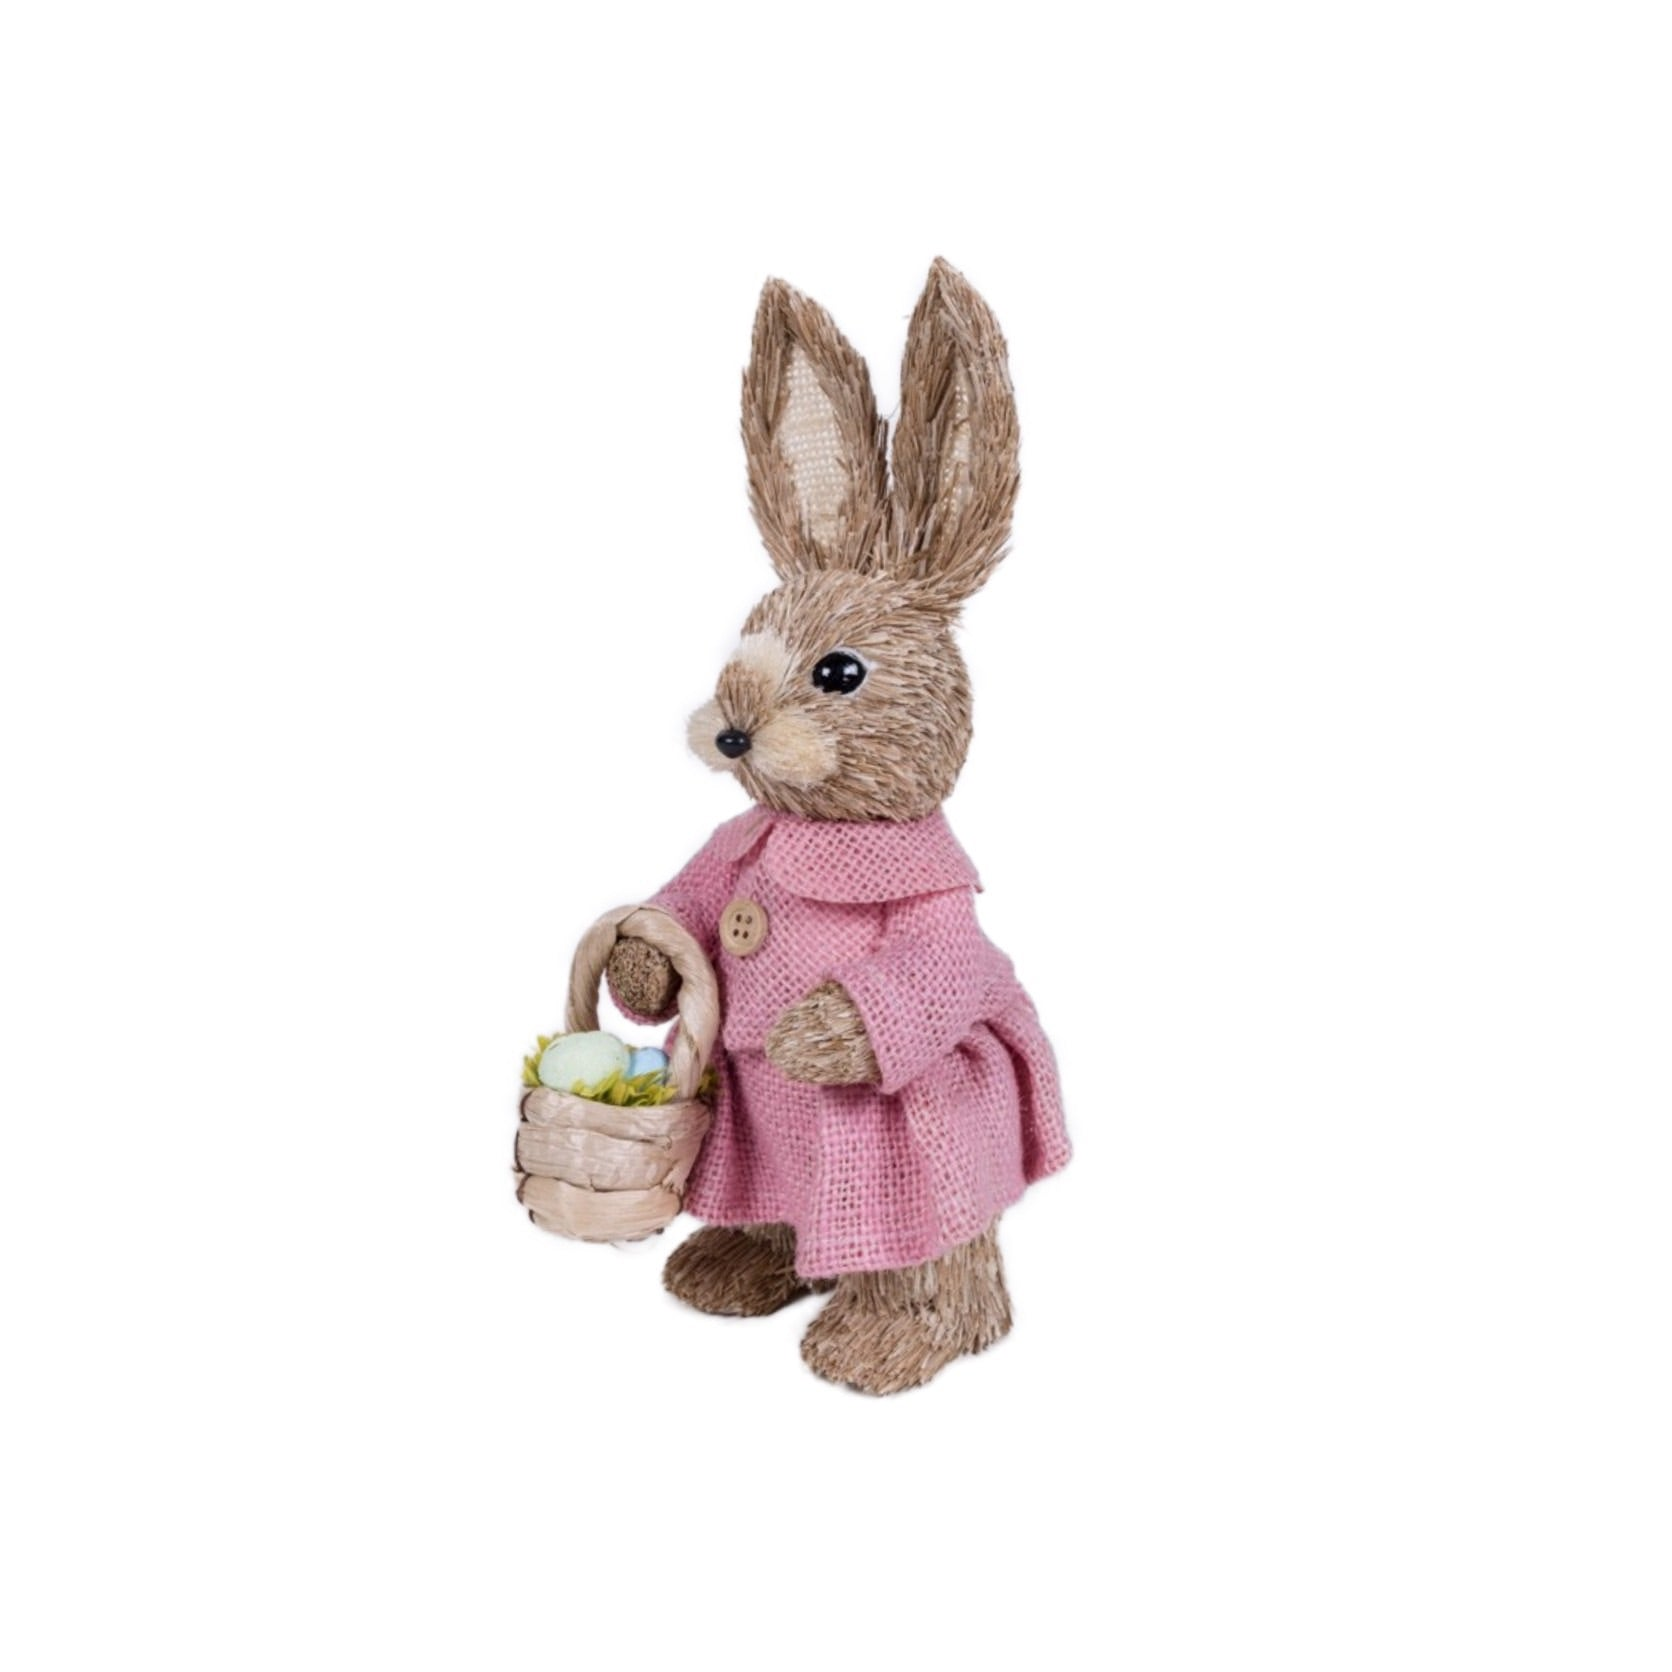 Jute Rabbit in Pink Dress with Basket